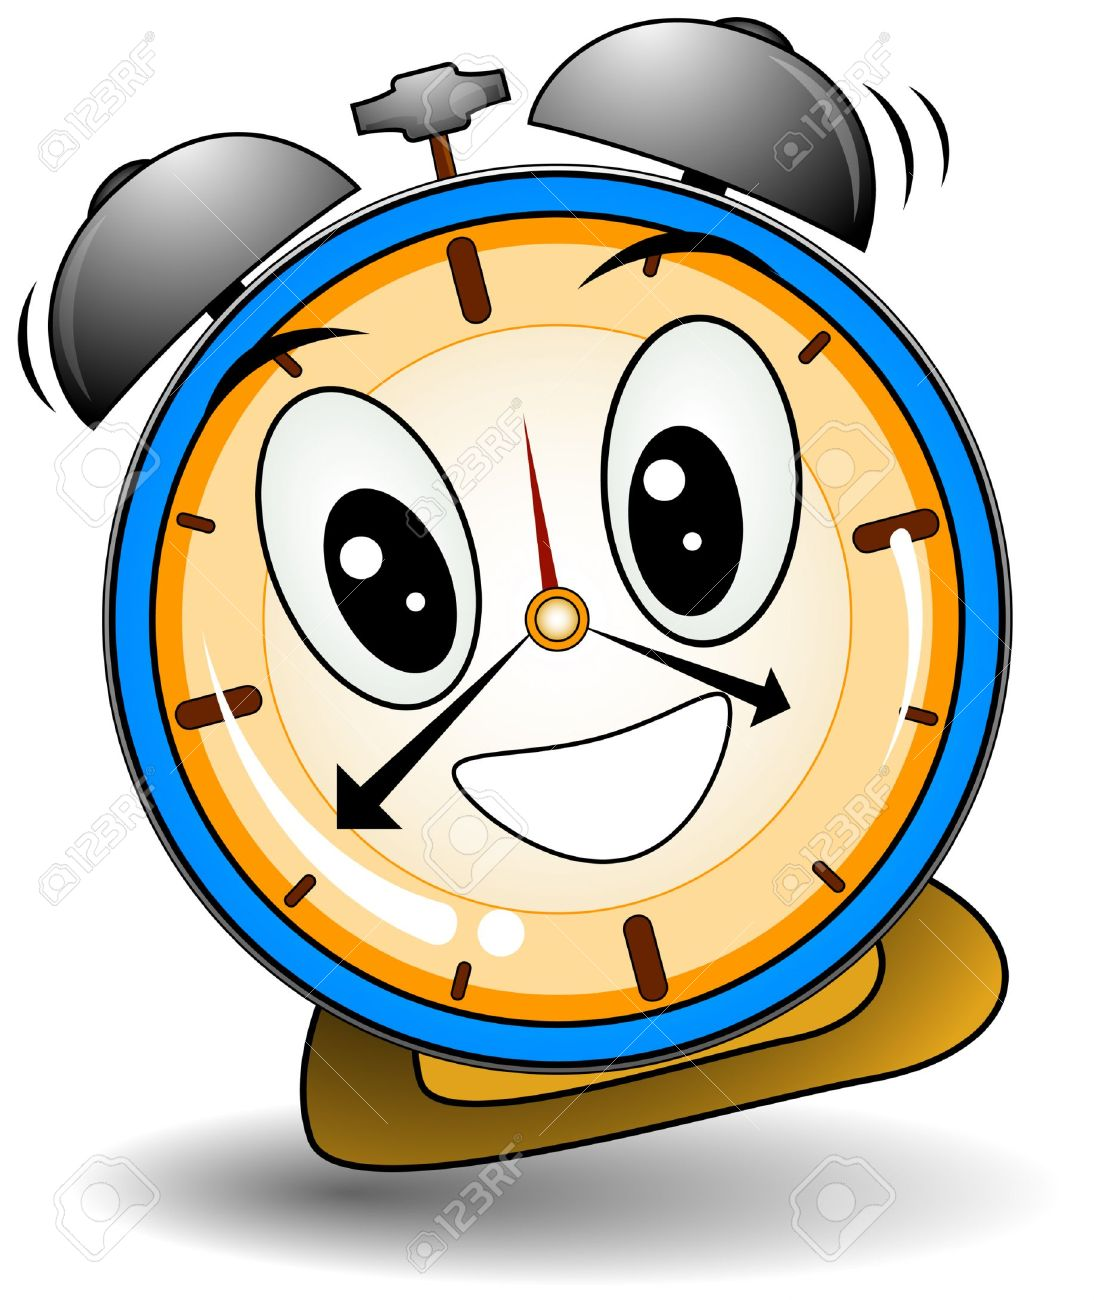 Cartoon alarm clock clipart image #10689.